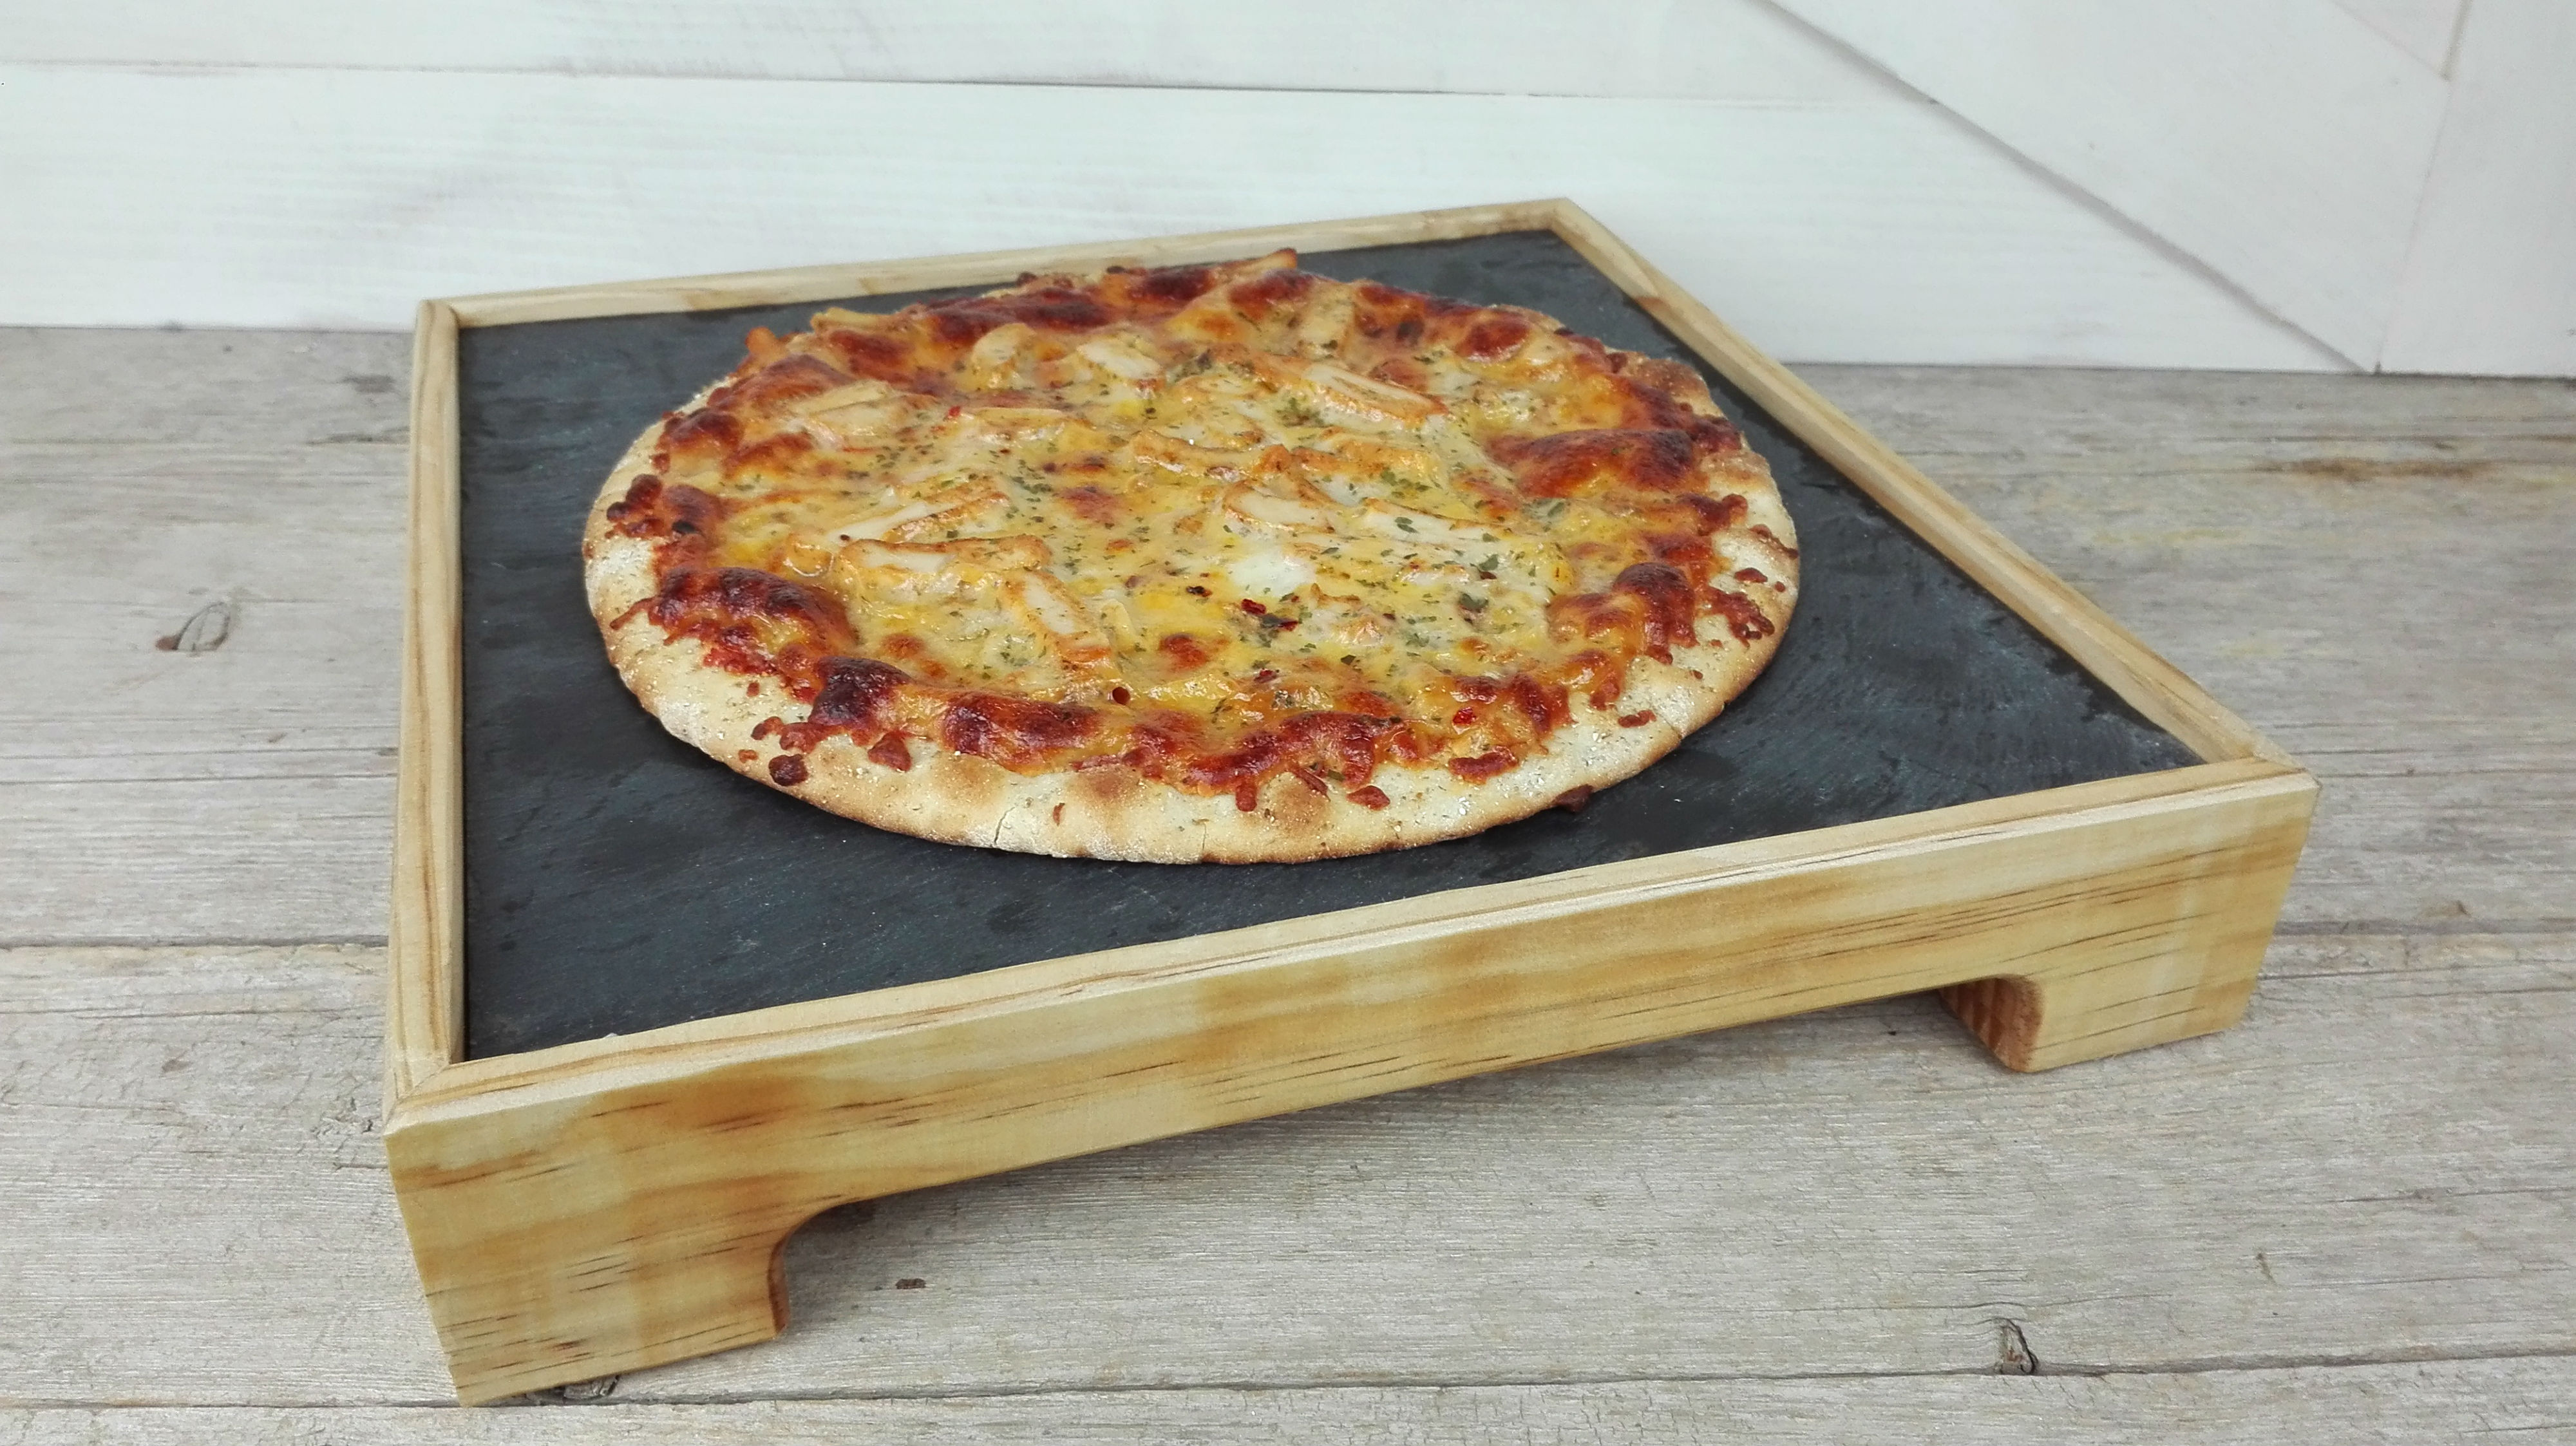 tabla madera pizarra pizzas